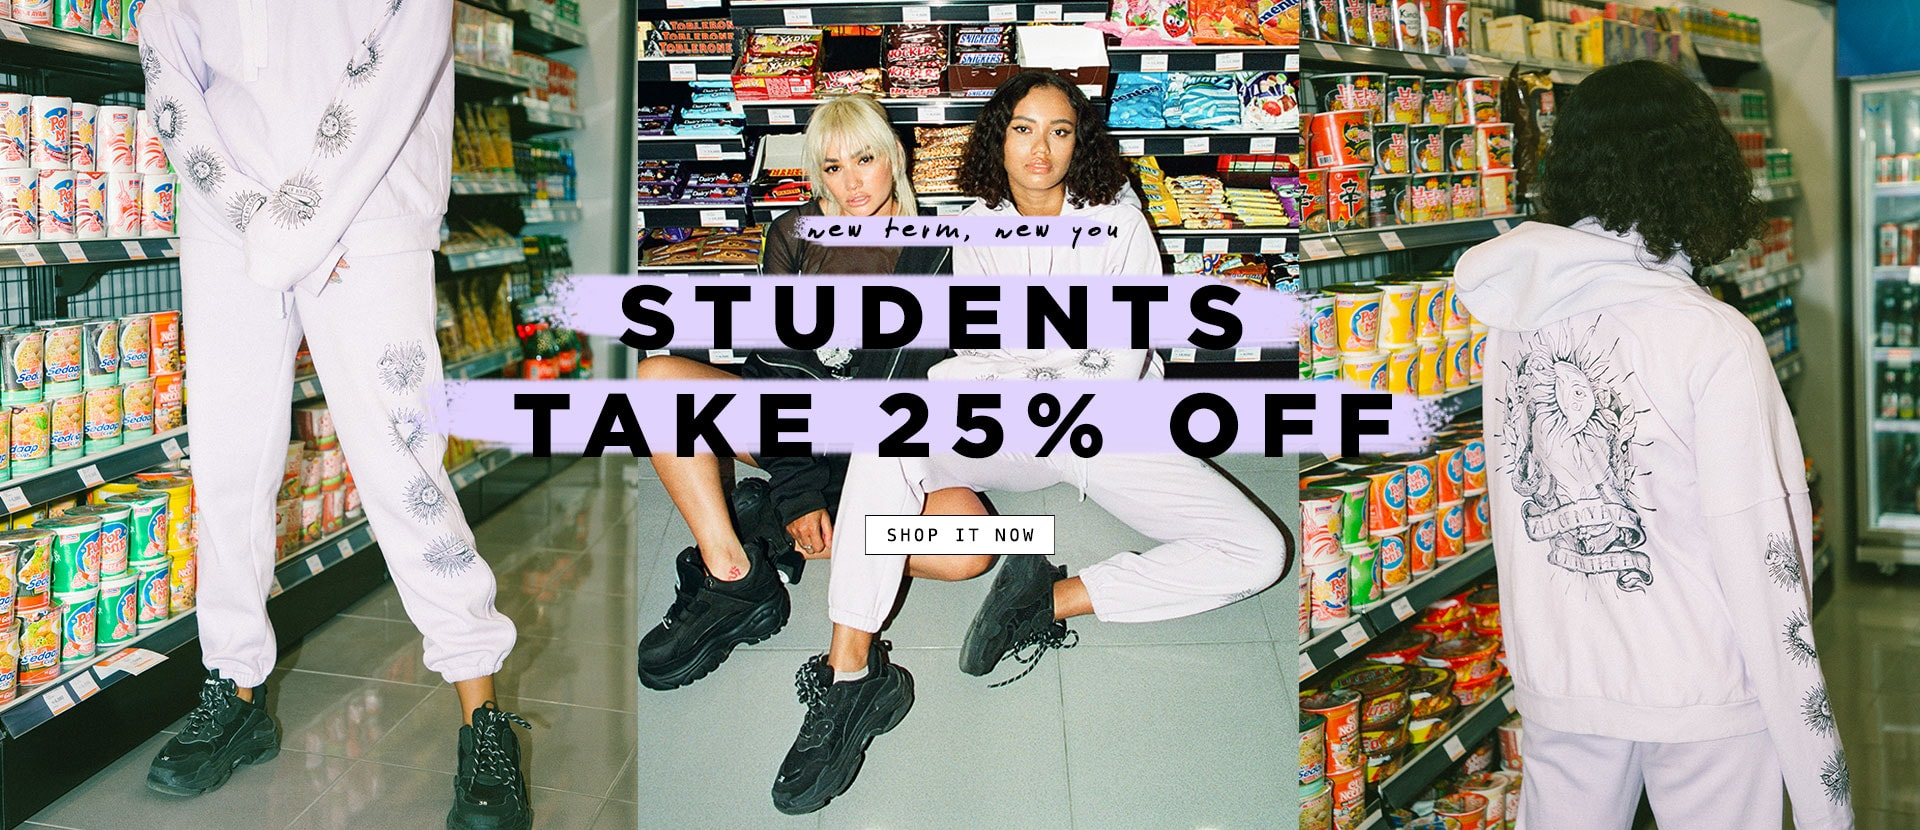 STUDENTS TAKE 25% OFF